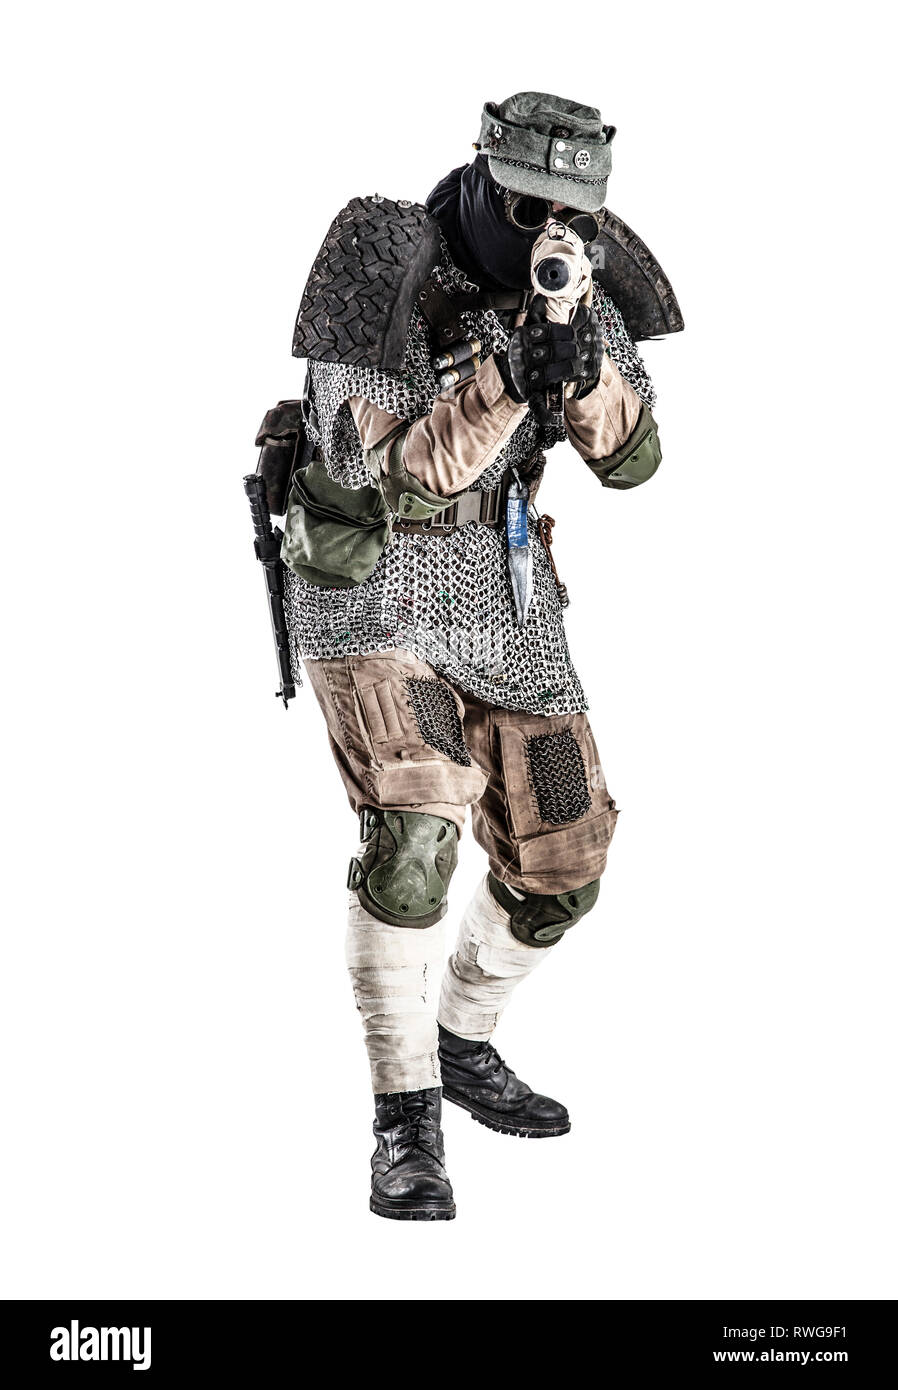 Post apocalyptic soldier wearing handmade armor, aiming submachine gun. - Stock Image